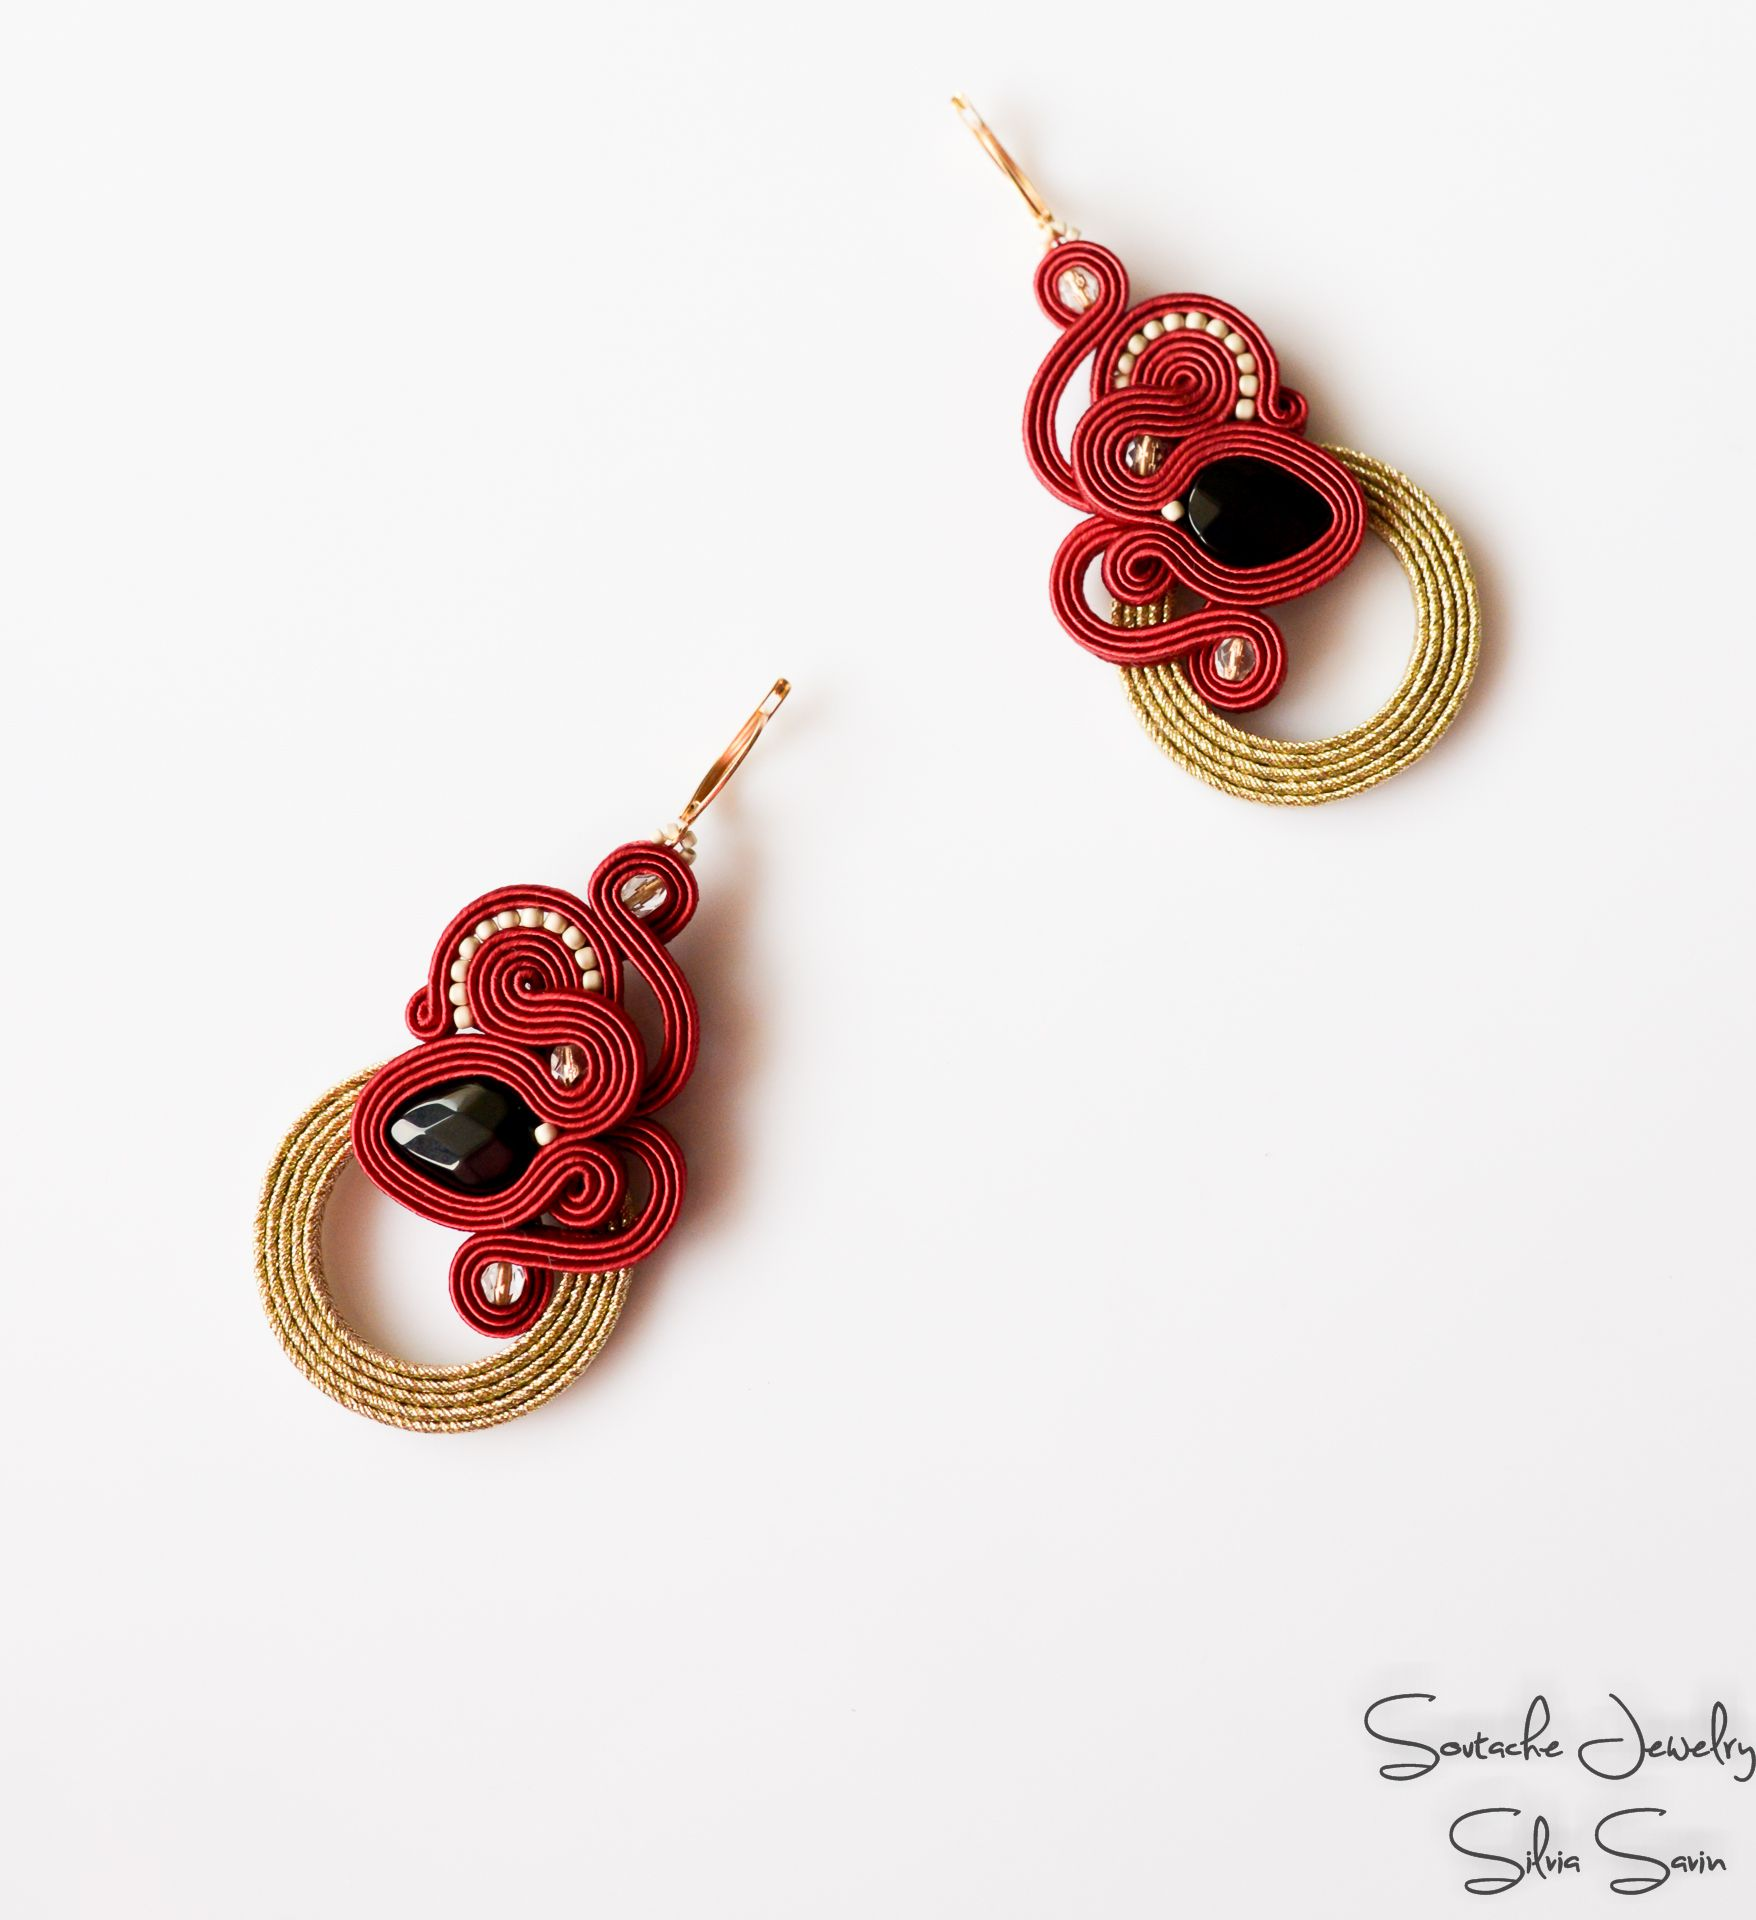 earrings in style glazed jewellery gold rose ring red